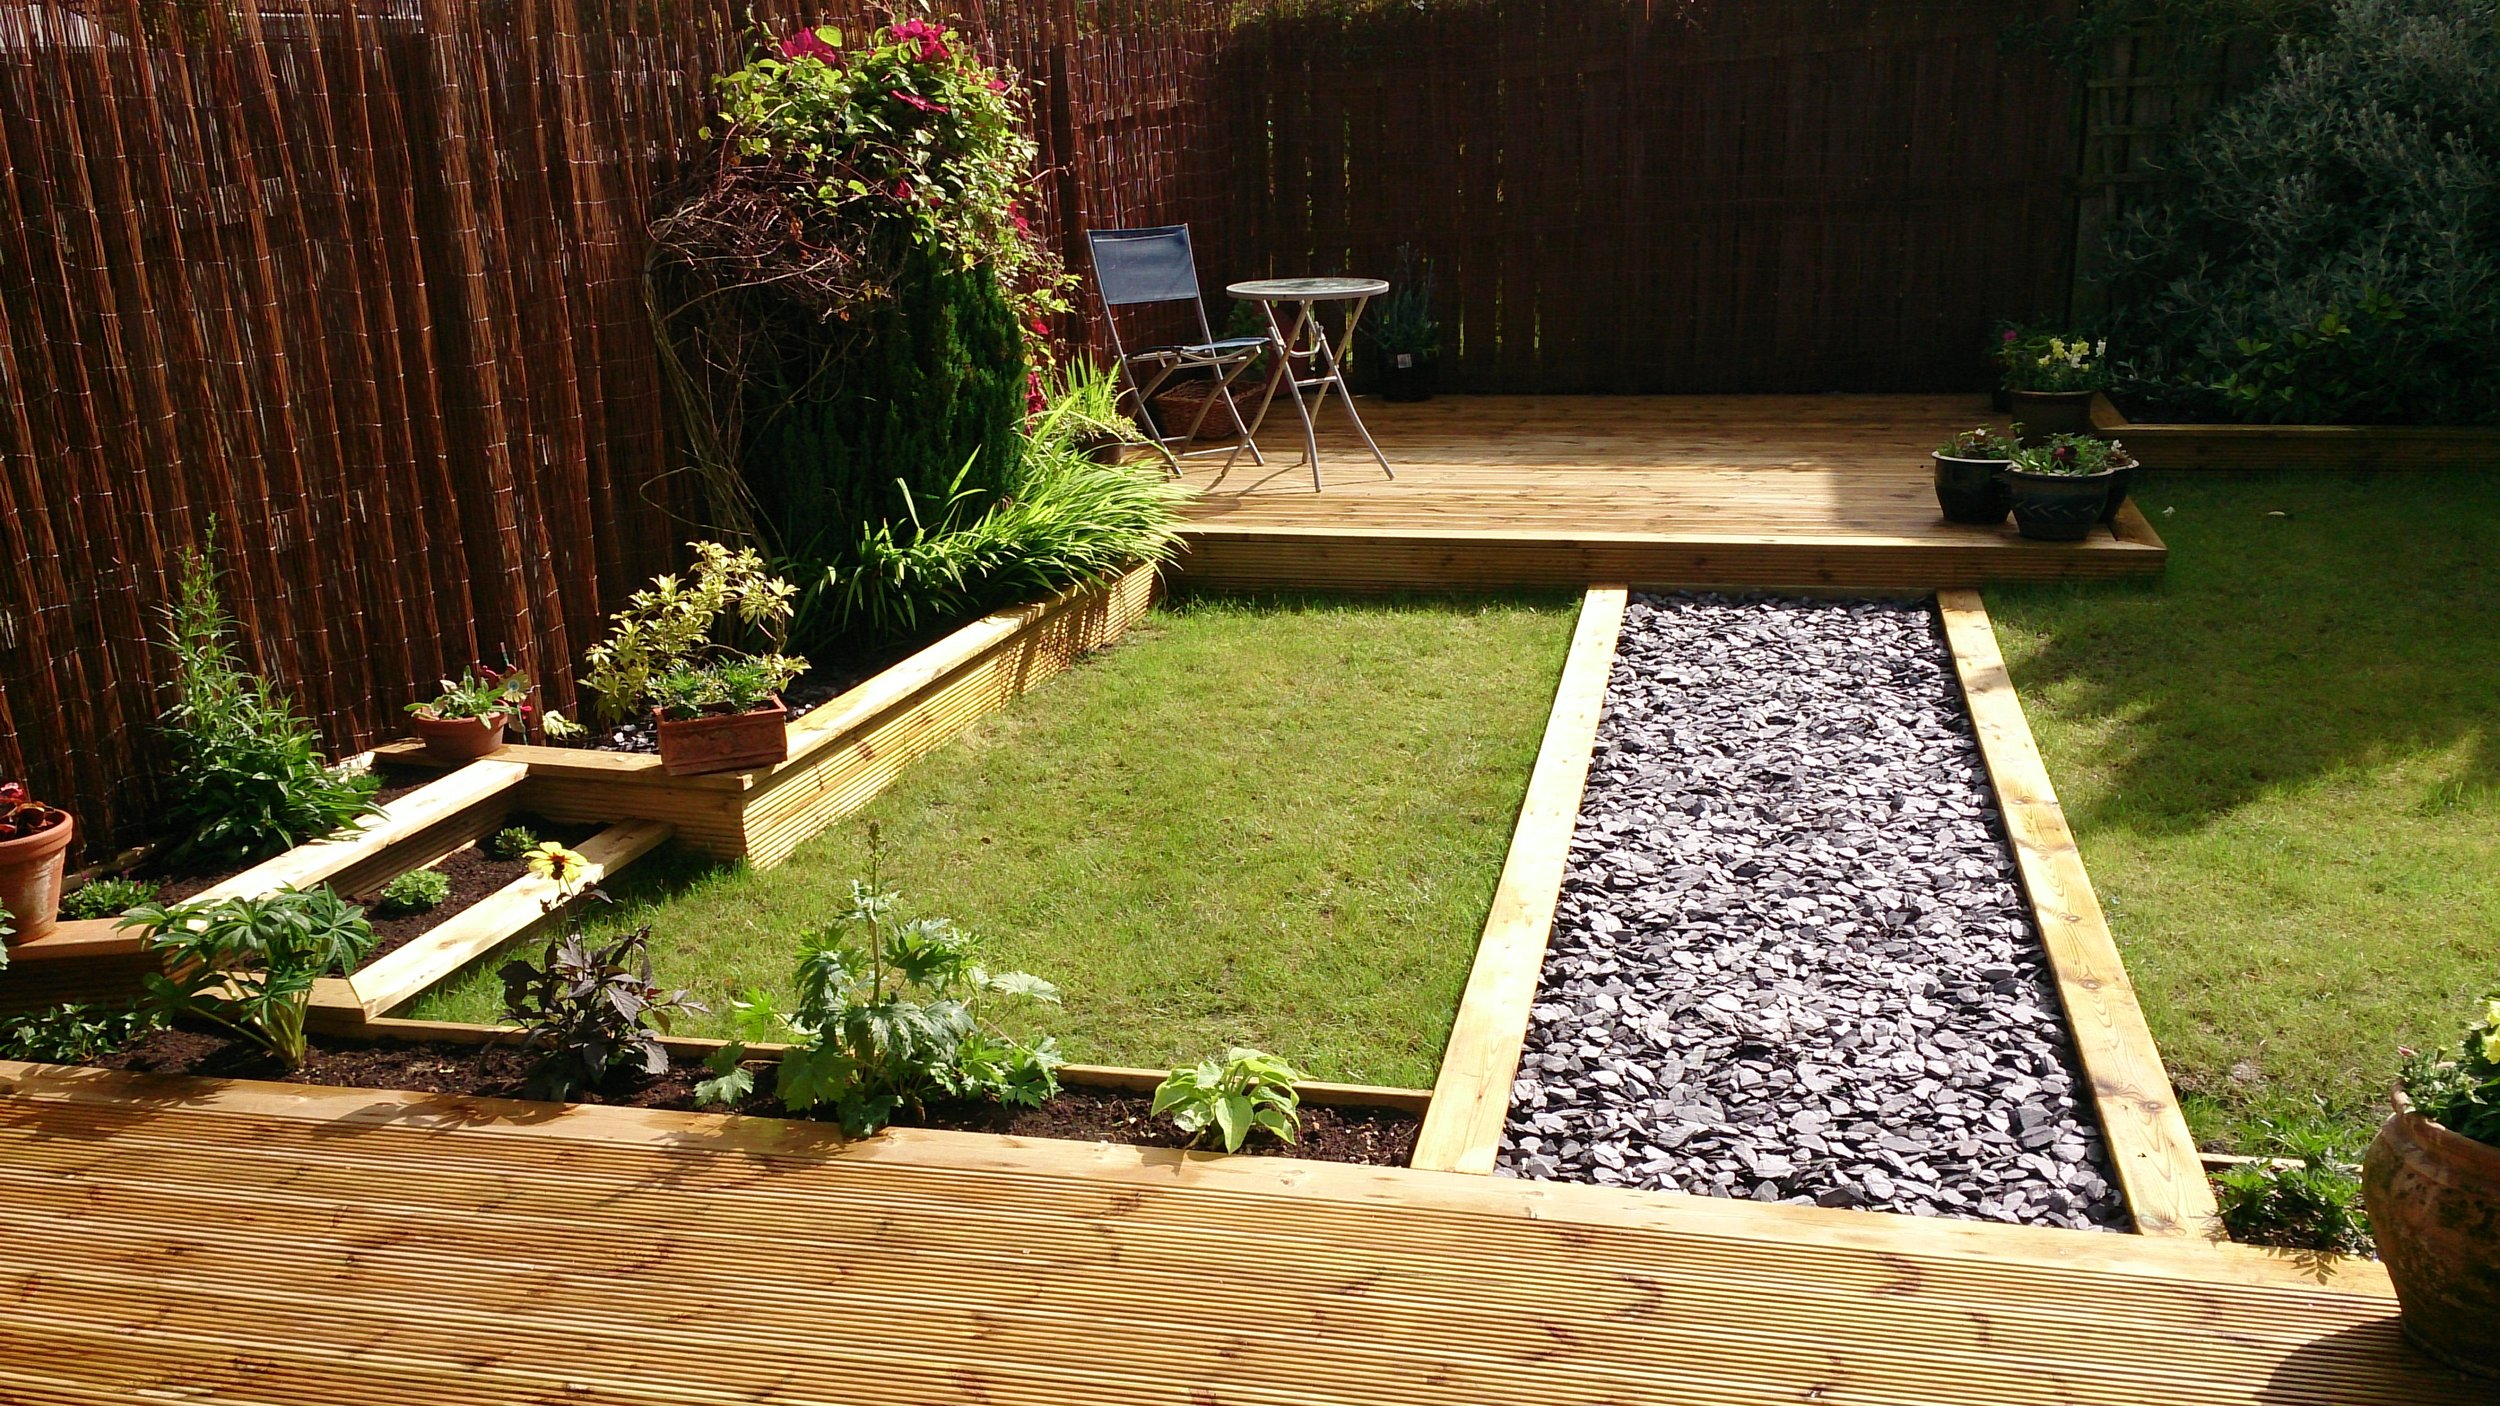 Slate path between decks